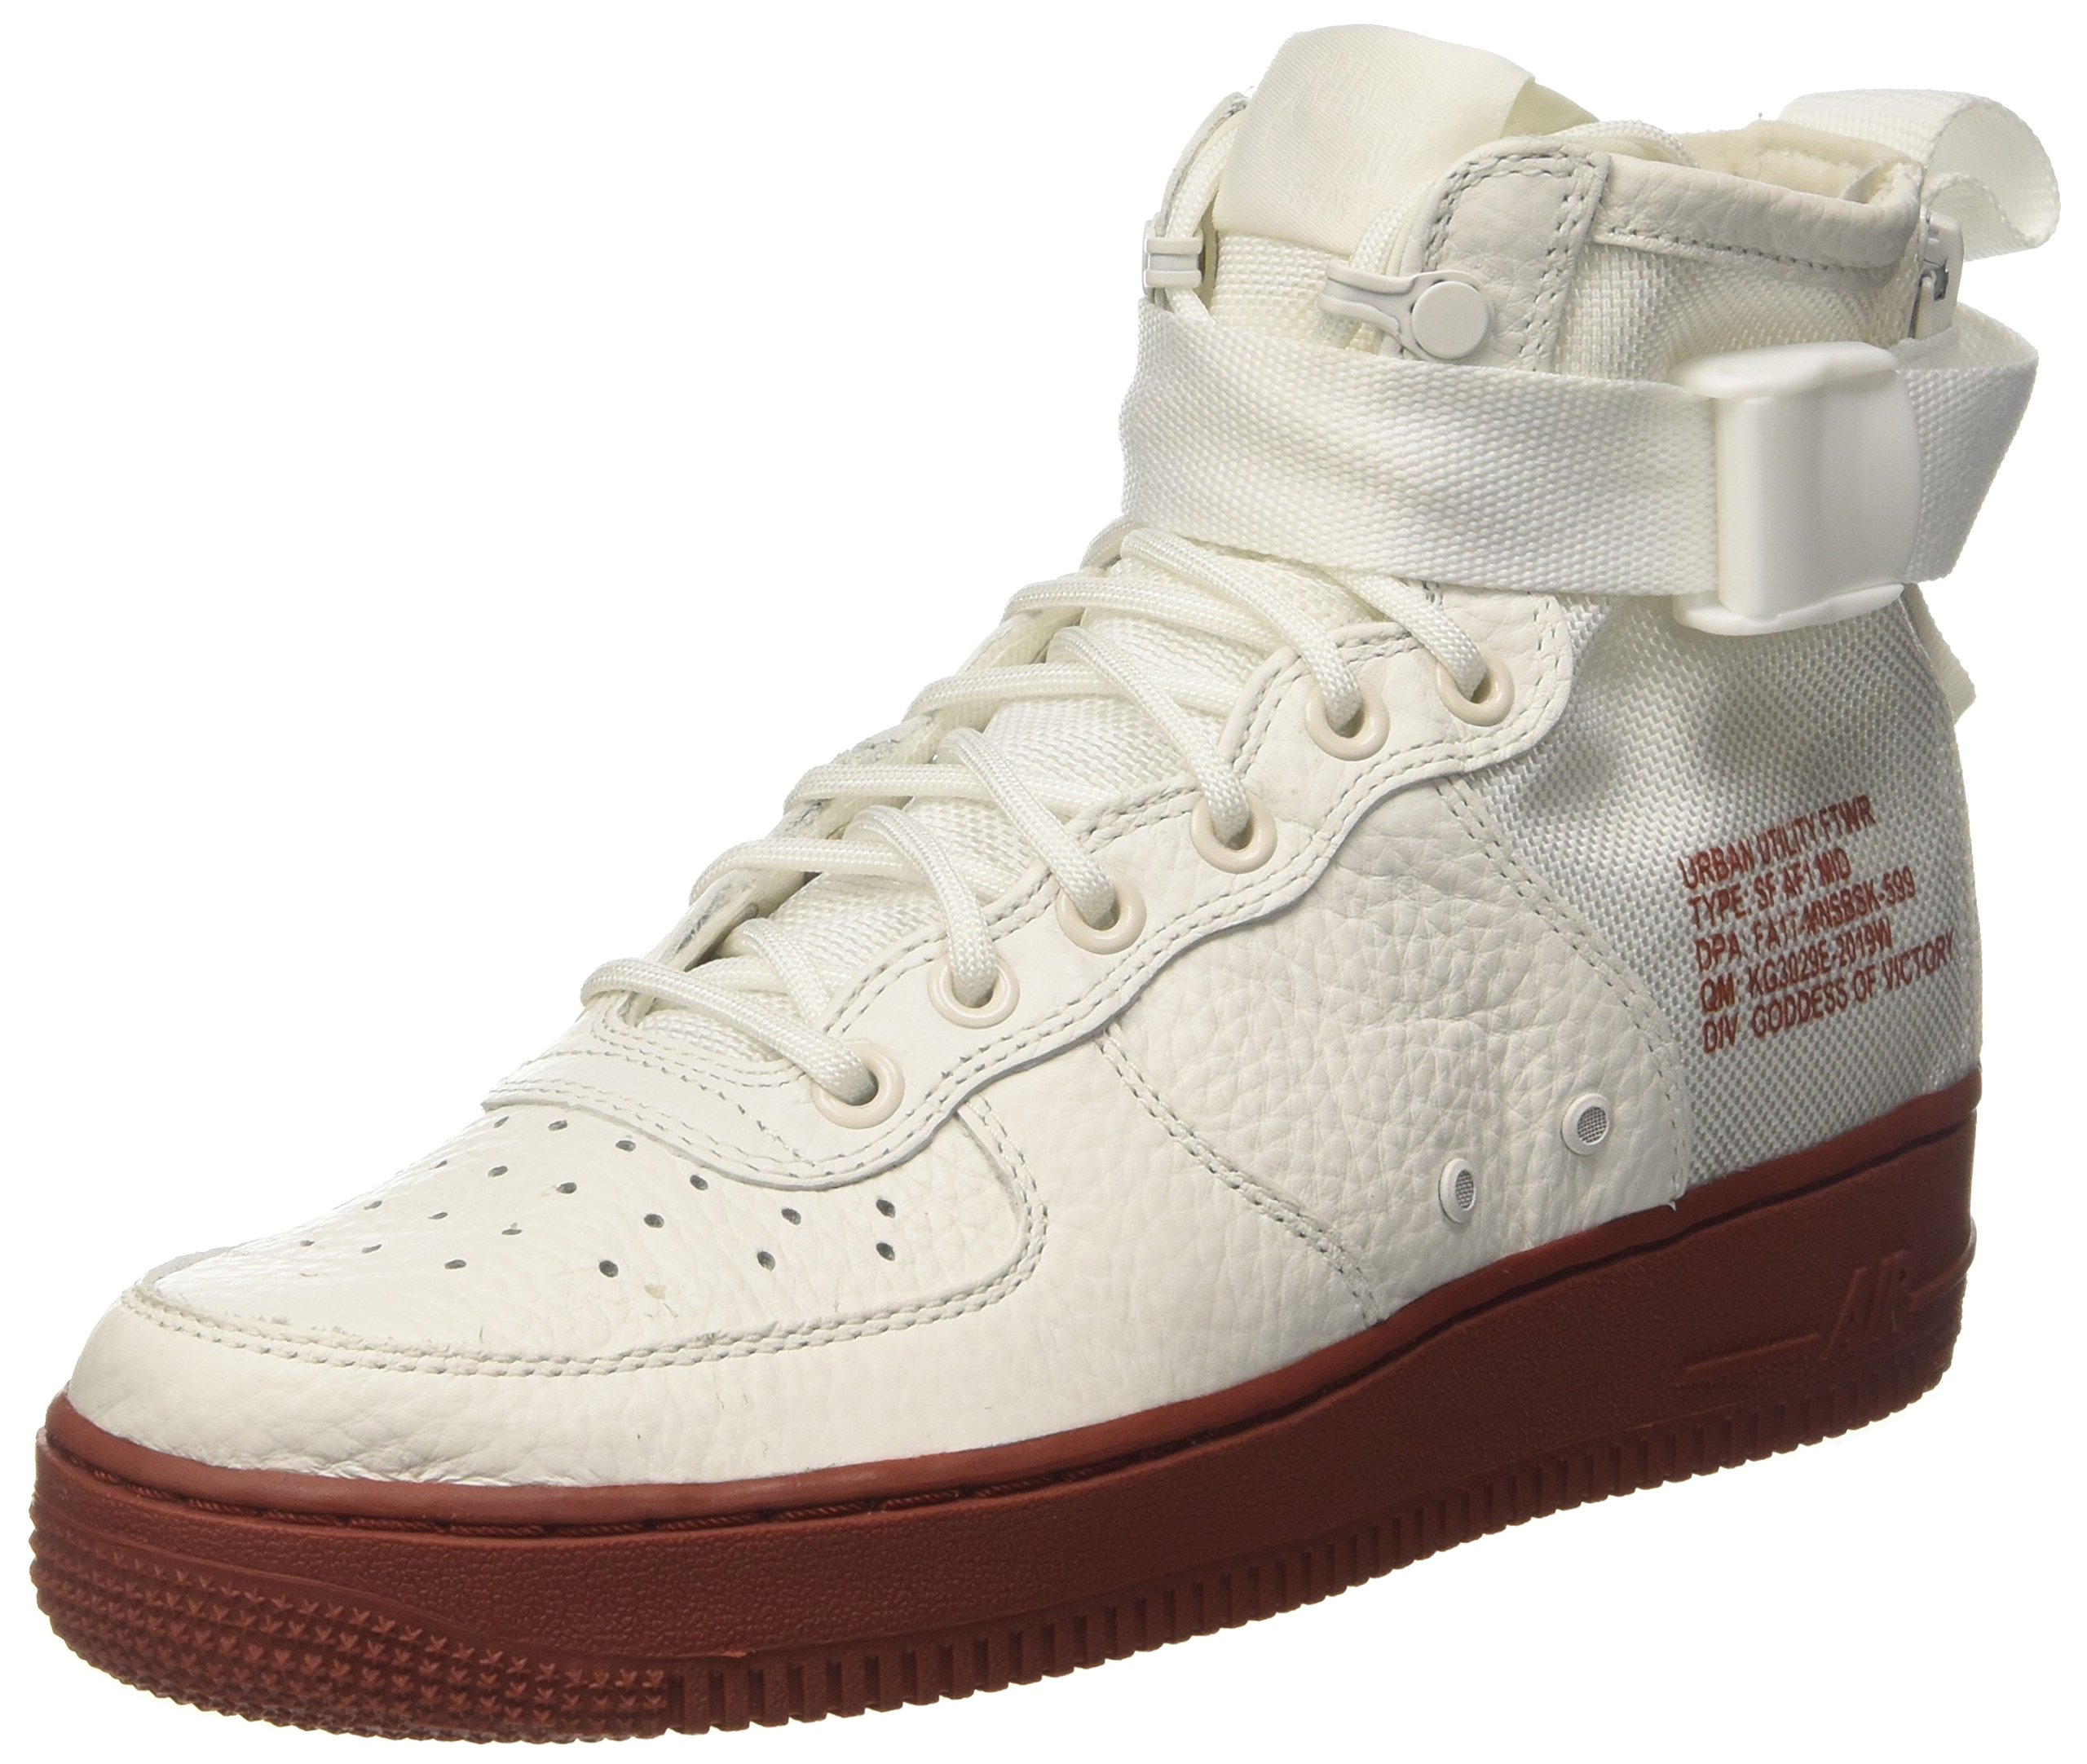 premium selection beeee 63380 Galleon - NIKE Men's SF AF1 Mid Basketball Shoe Ivory/Mars Stone/Ivory 10.5  D(M) US